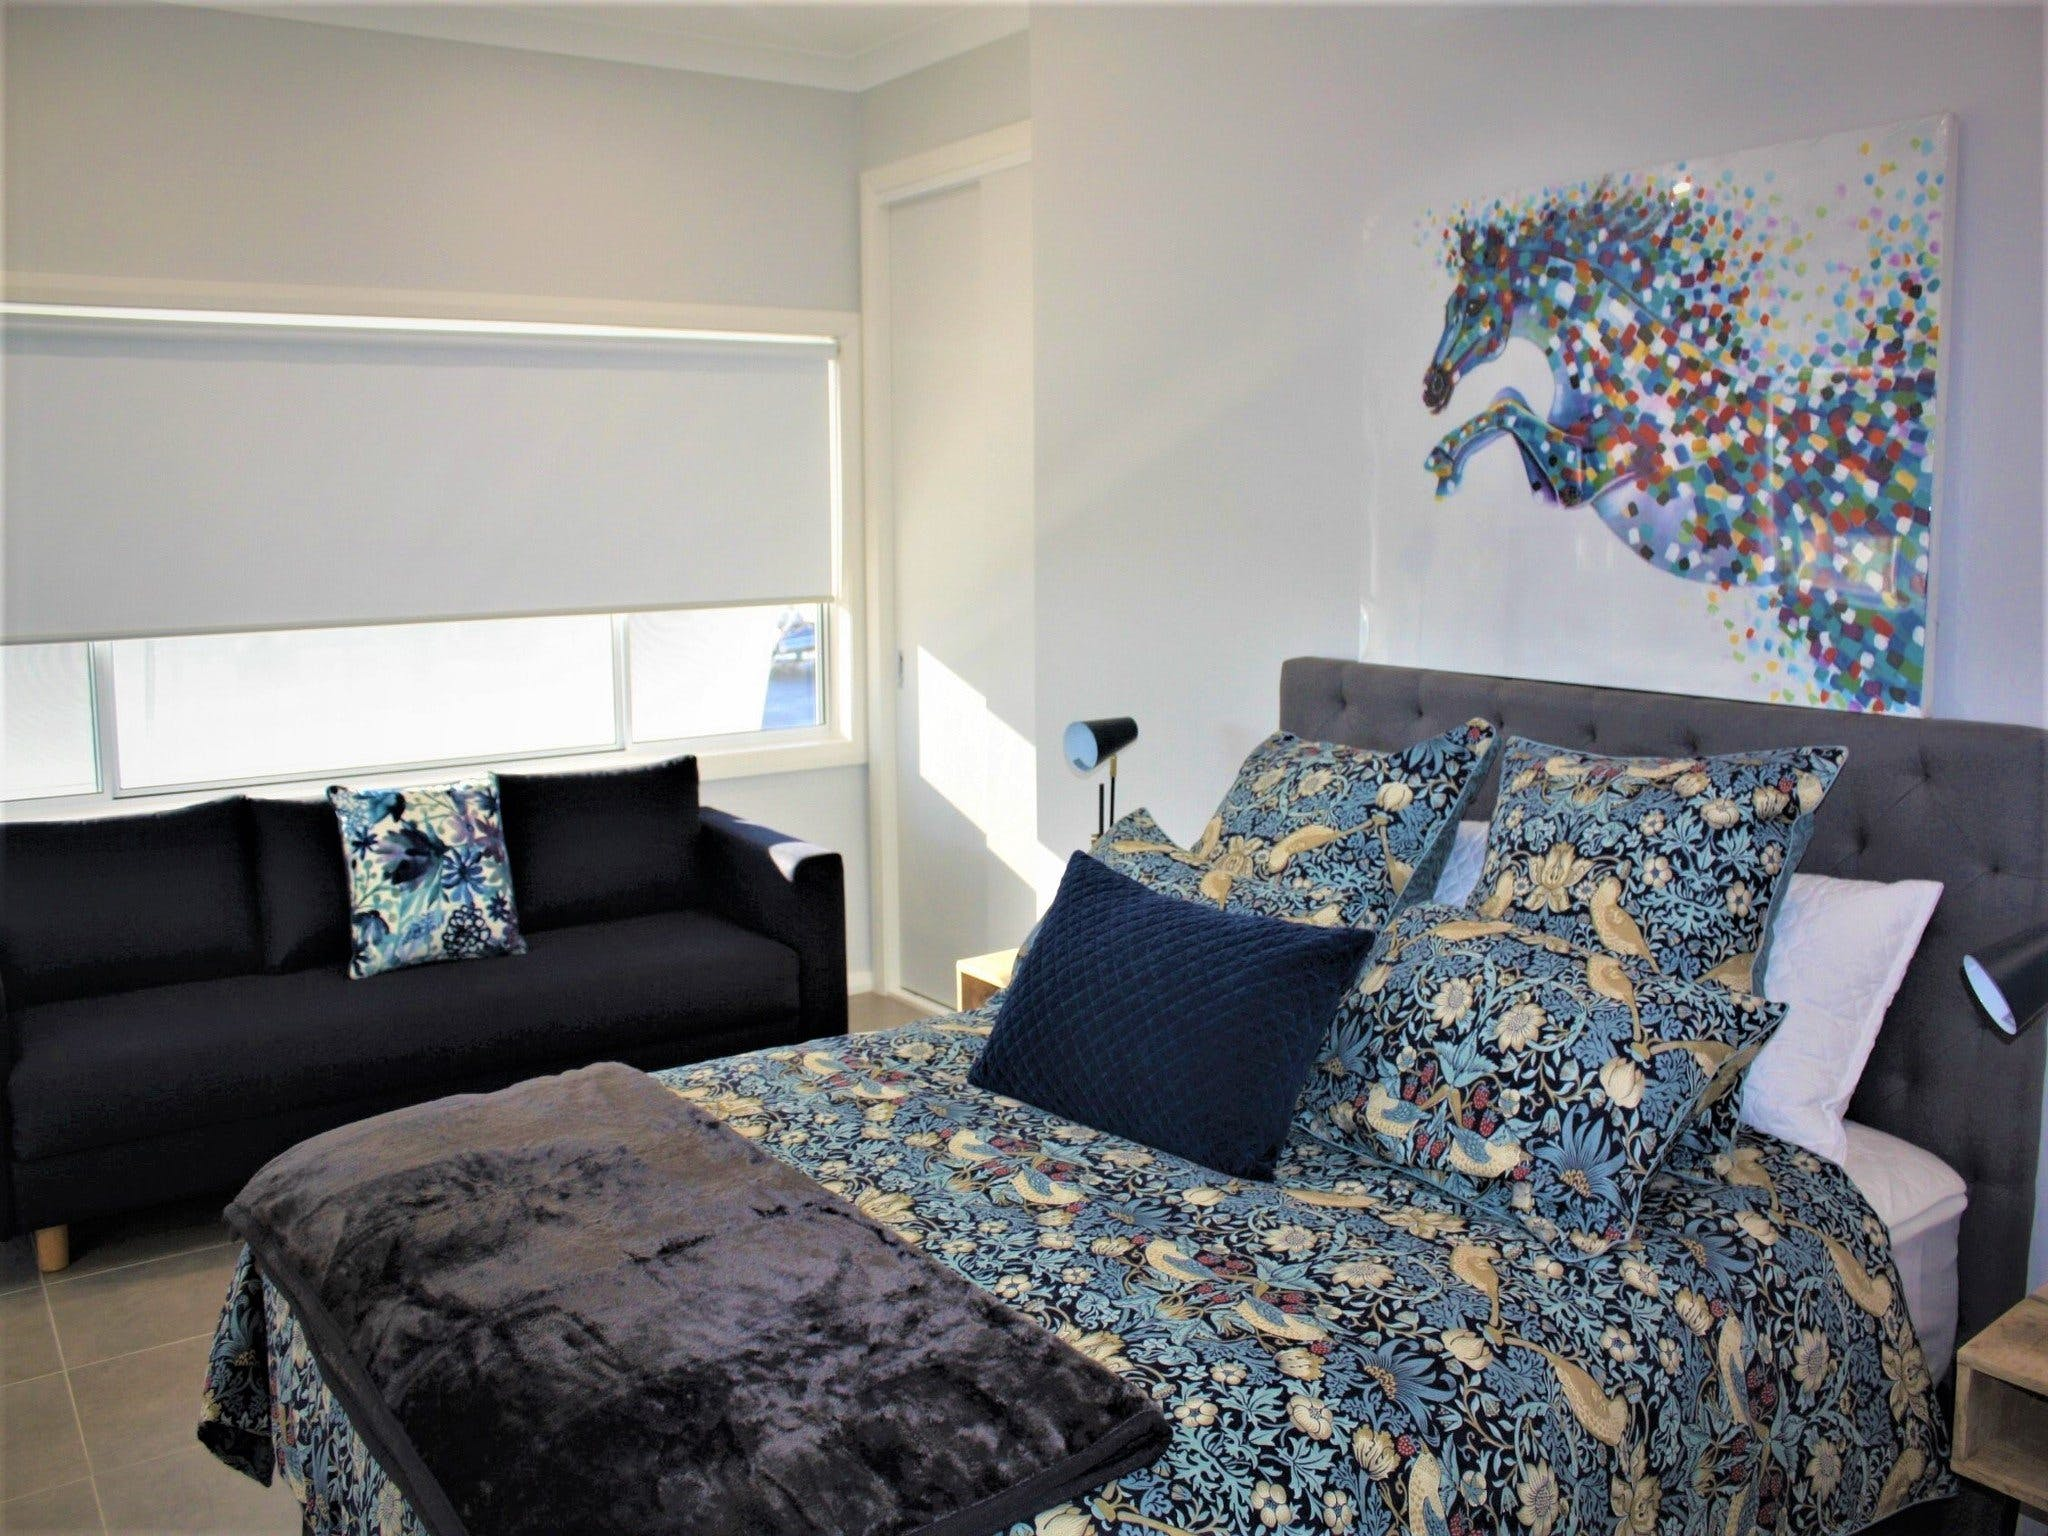 Coolah Shorts - Self Contained Apartments - Accommodation Whitsundays